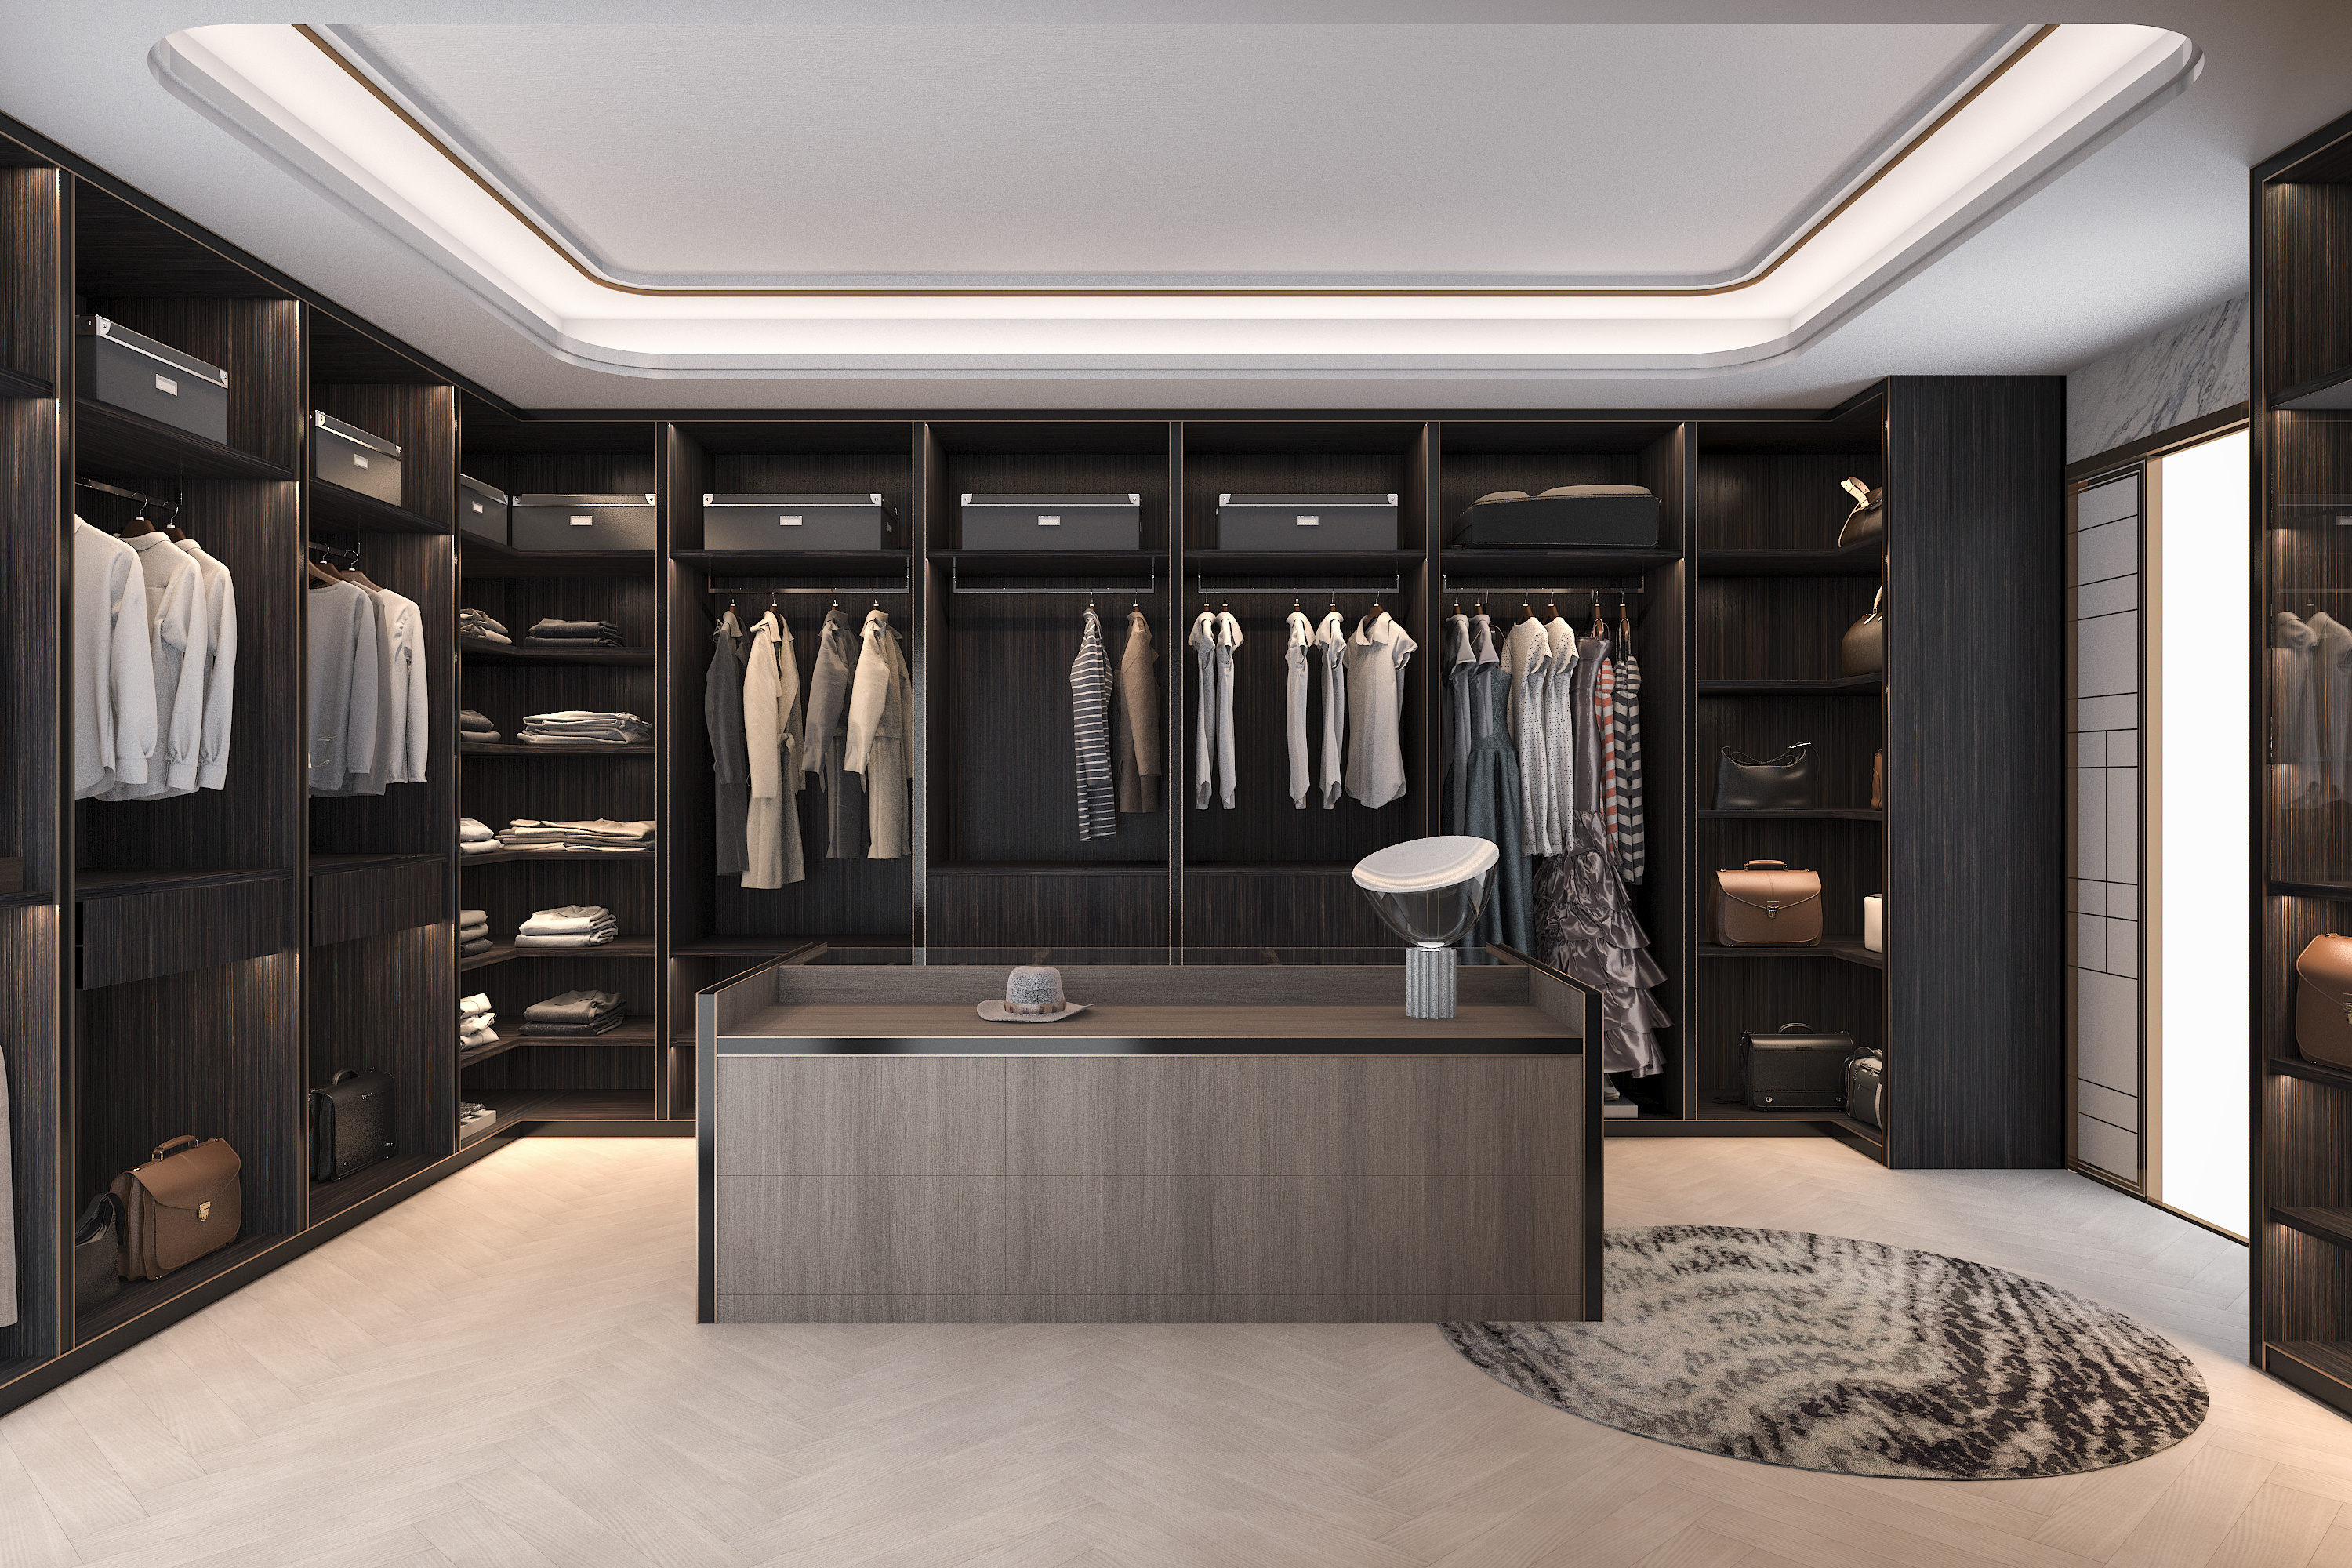 A Step-By-Step Guide To DIY Walk In Closet | Storables